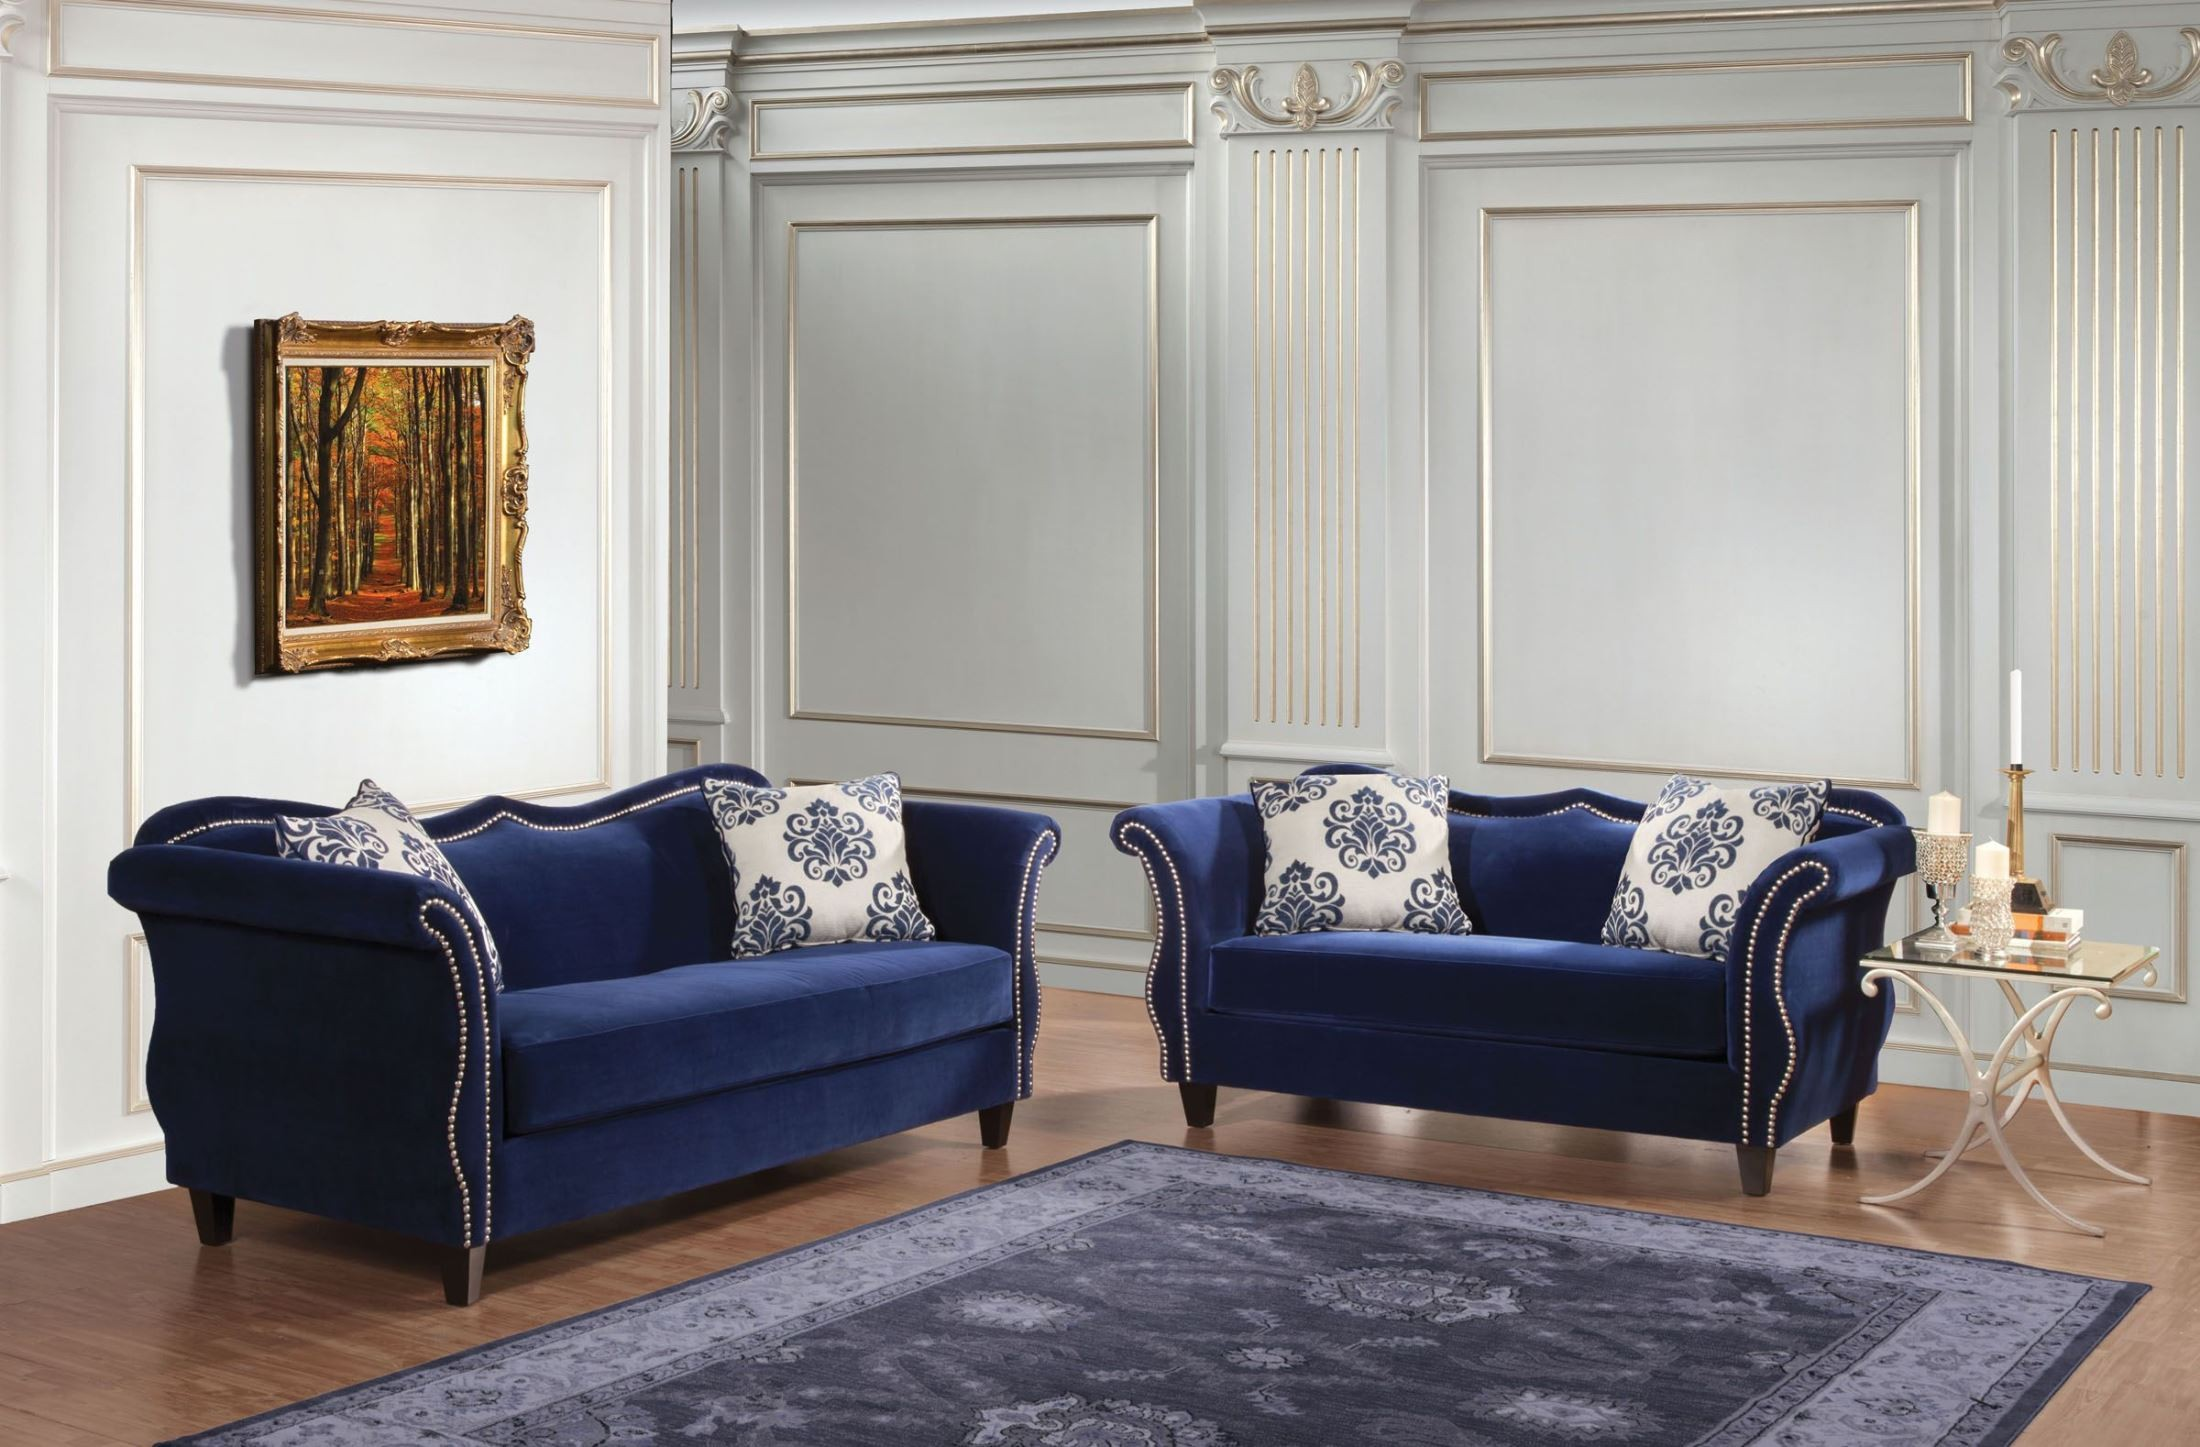 Zaffiro royal blue living room set sm2231 sf furniture for Couch living room furniture